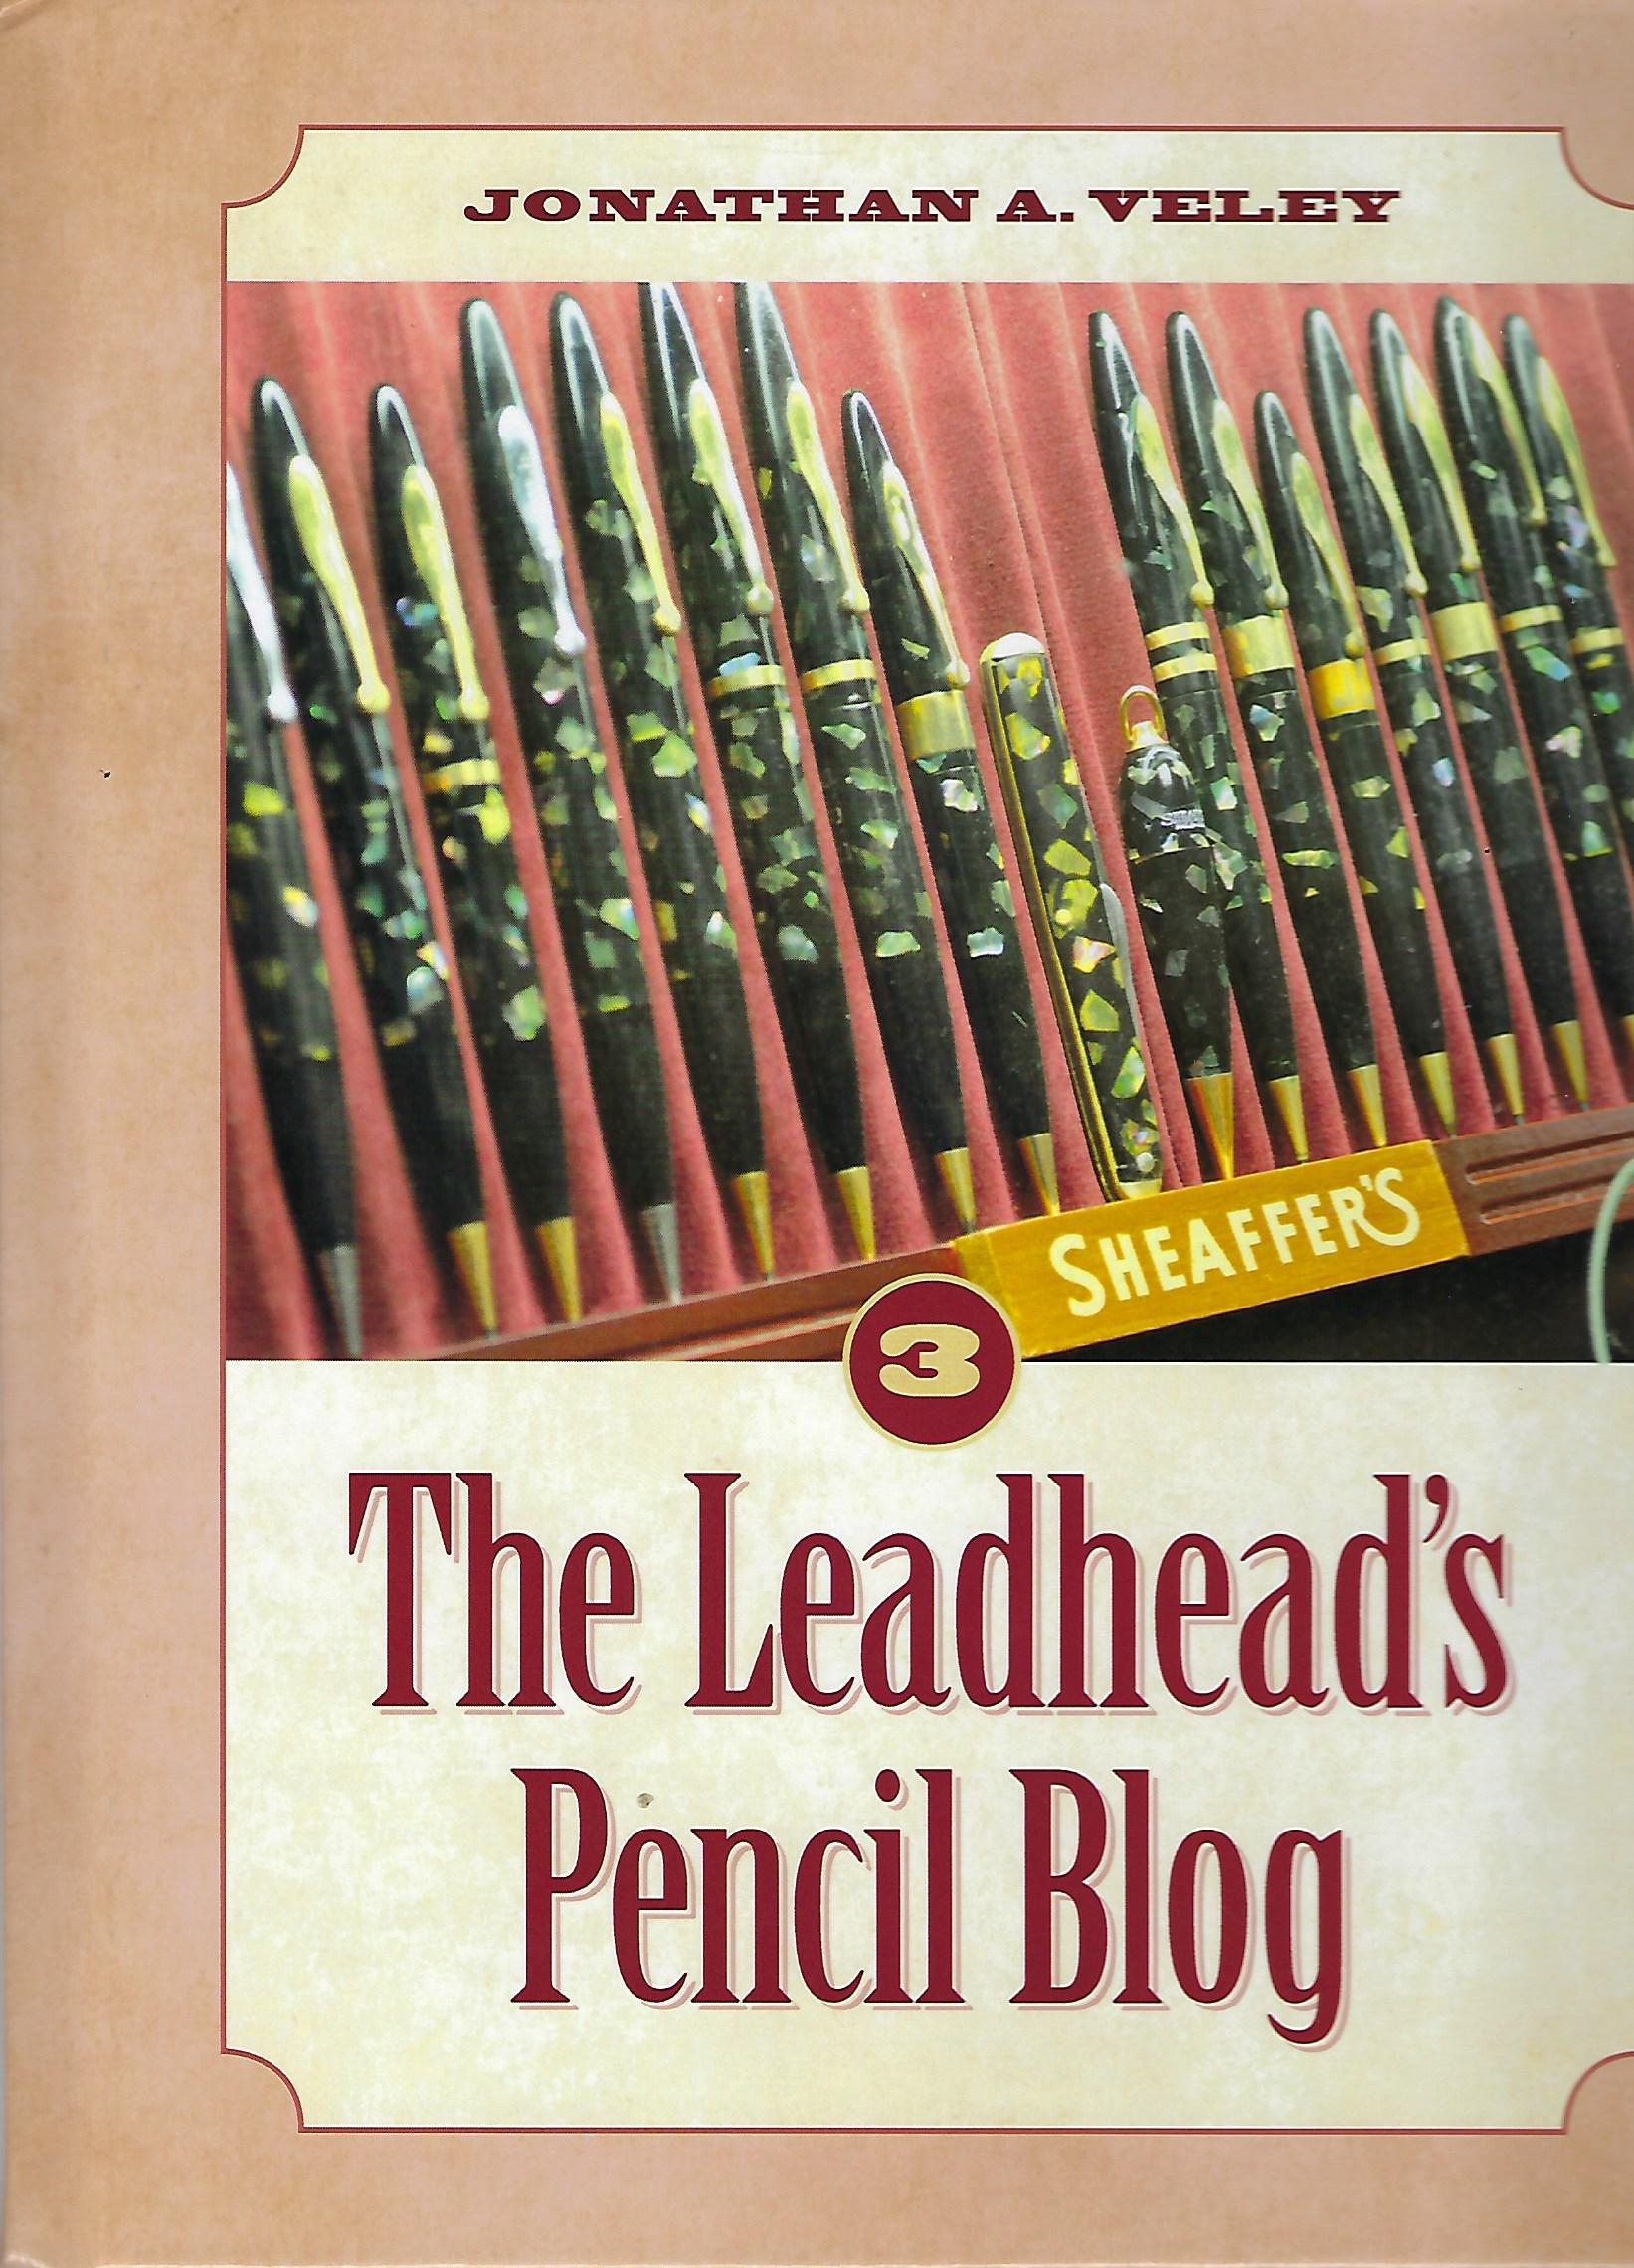 The Leadhead's Pencil Blog (3)